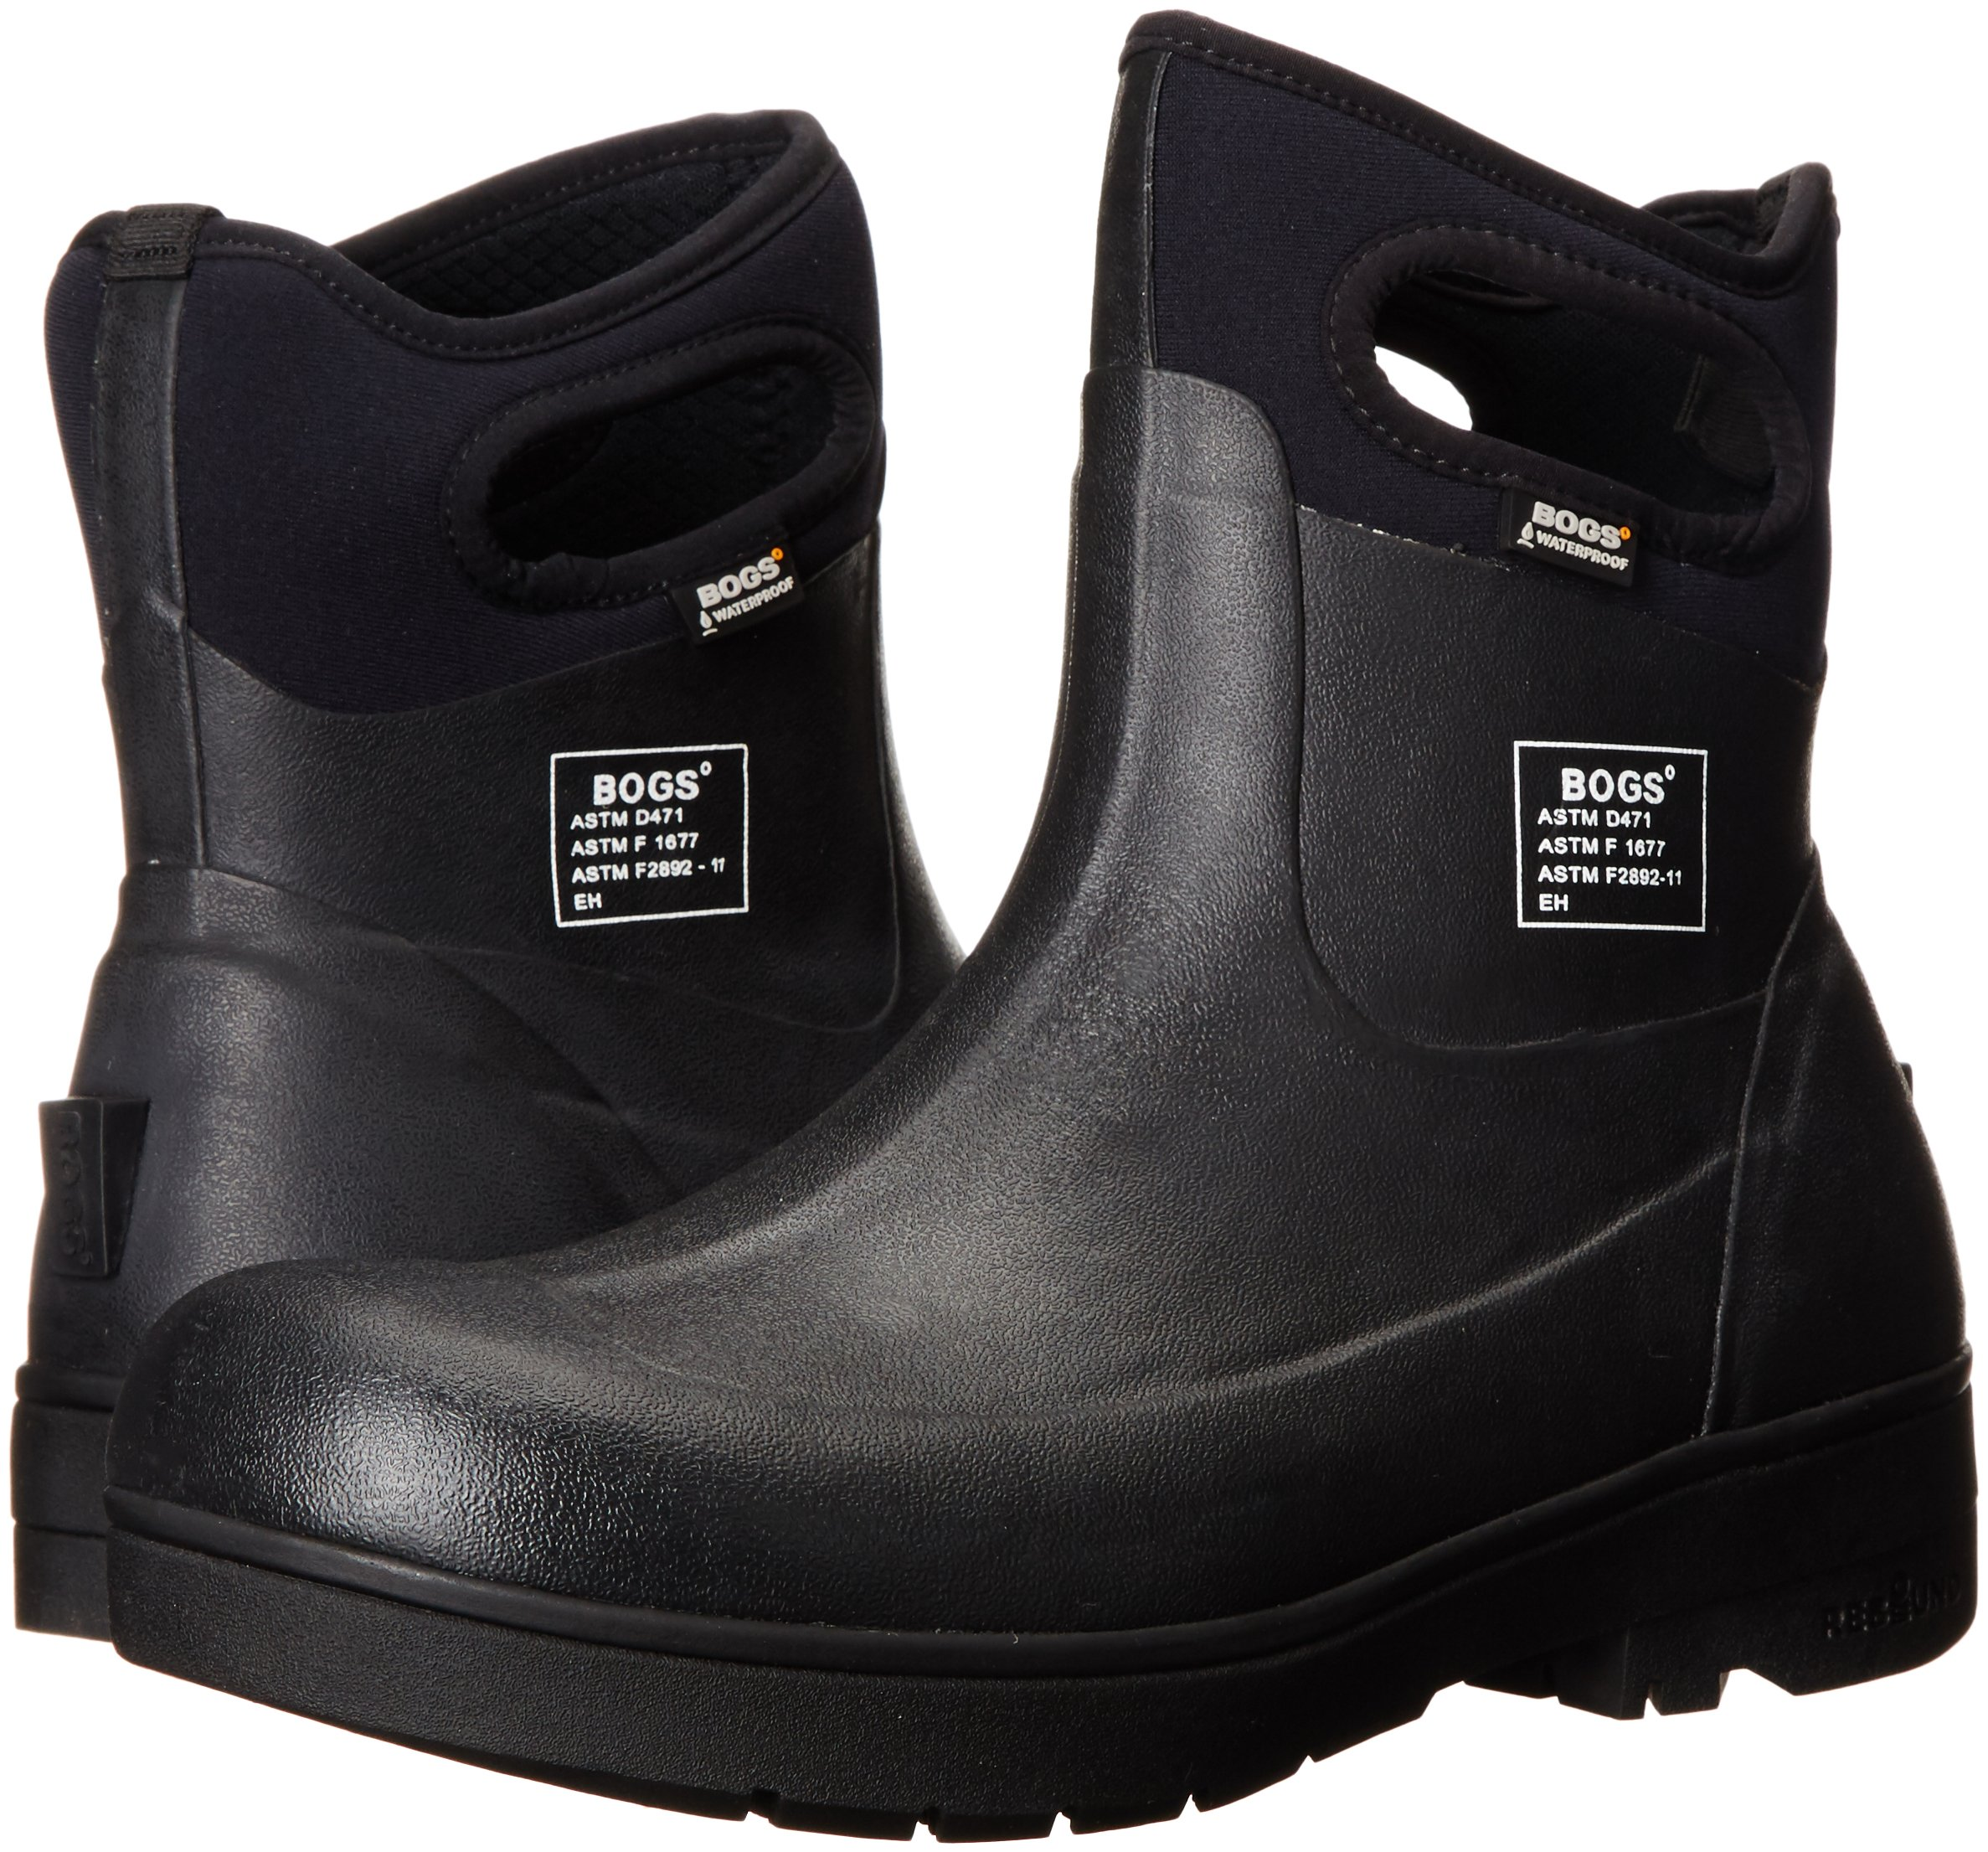 Bogs Men's Turf Stomper Insulated Work Boot, Black, 12 M US by Bogs (Image #6)